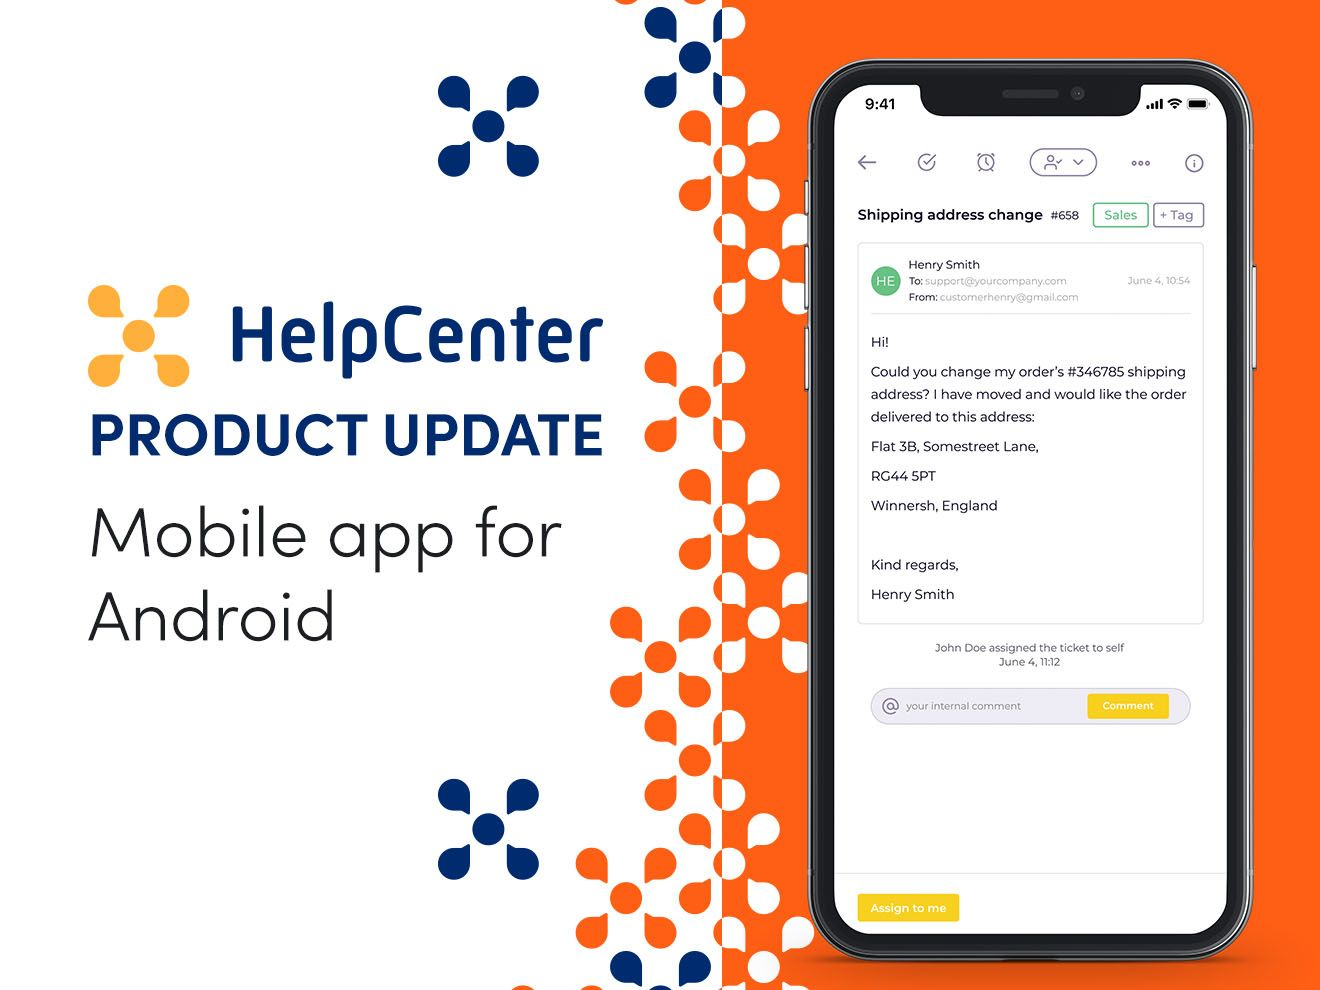 New: Provide Quick Support Wherever You Are With The HelpCenter Mobile App For Android